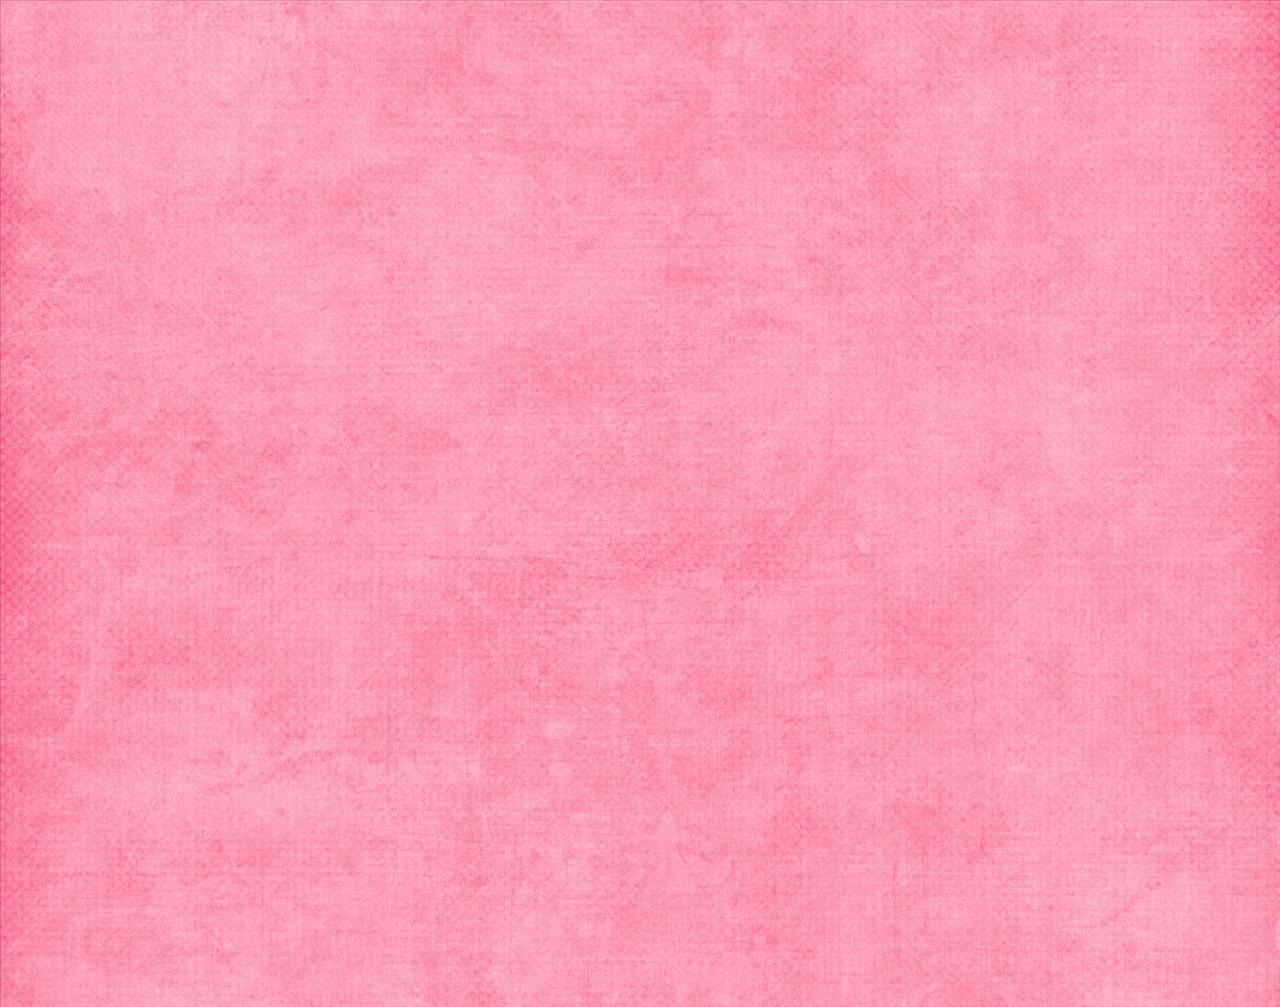 Pink Color Backgrounds Wallpaper Cave